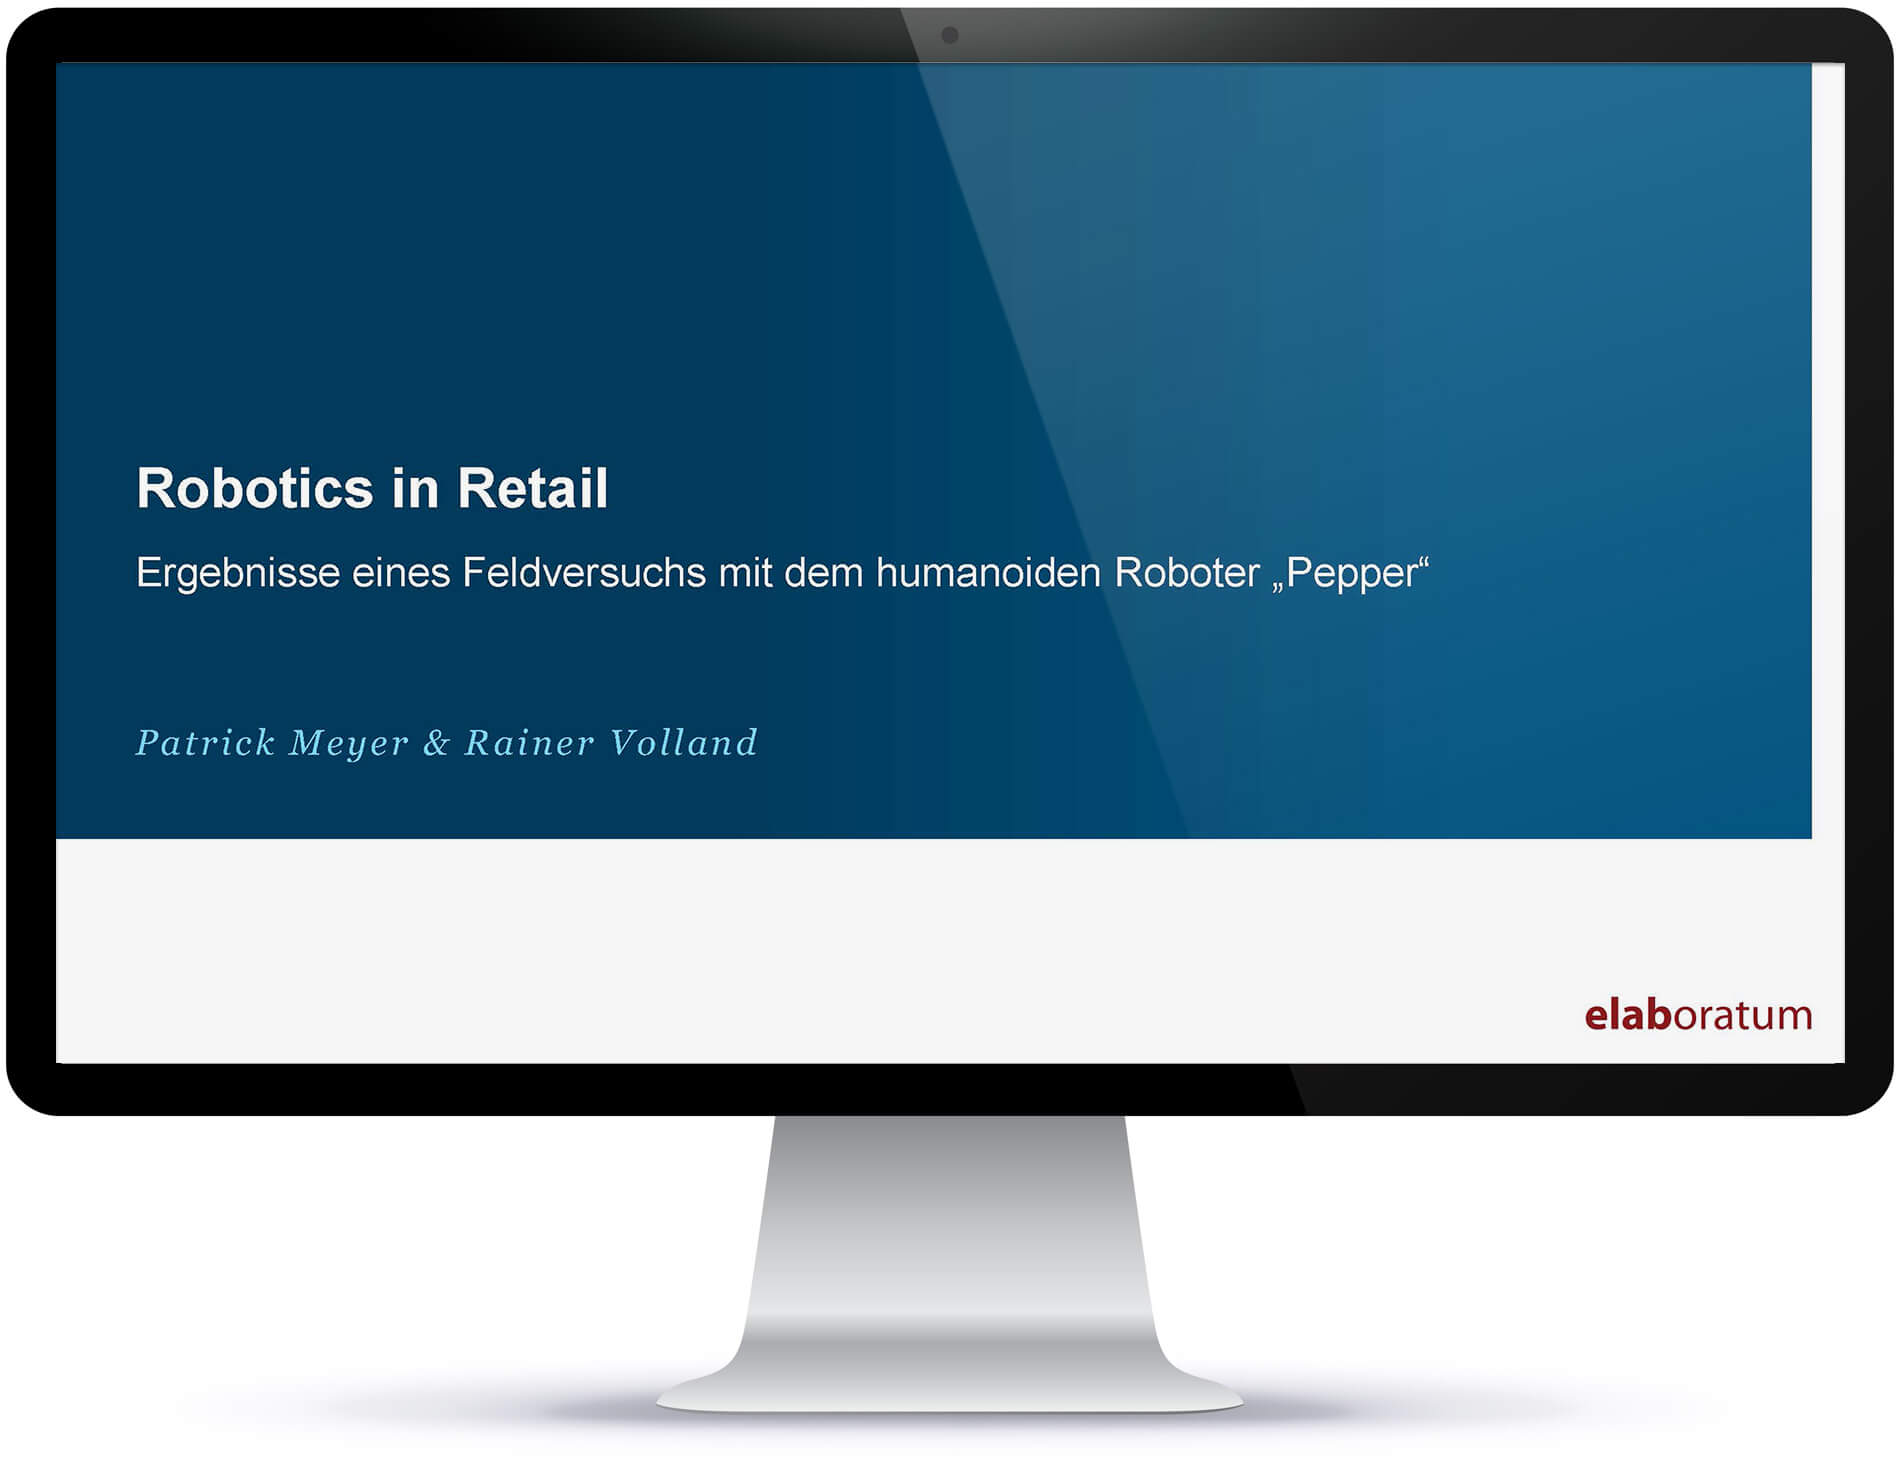 Robotics in Retail Studie